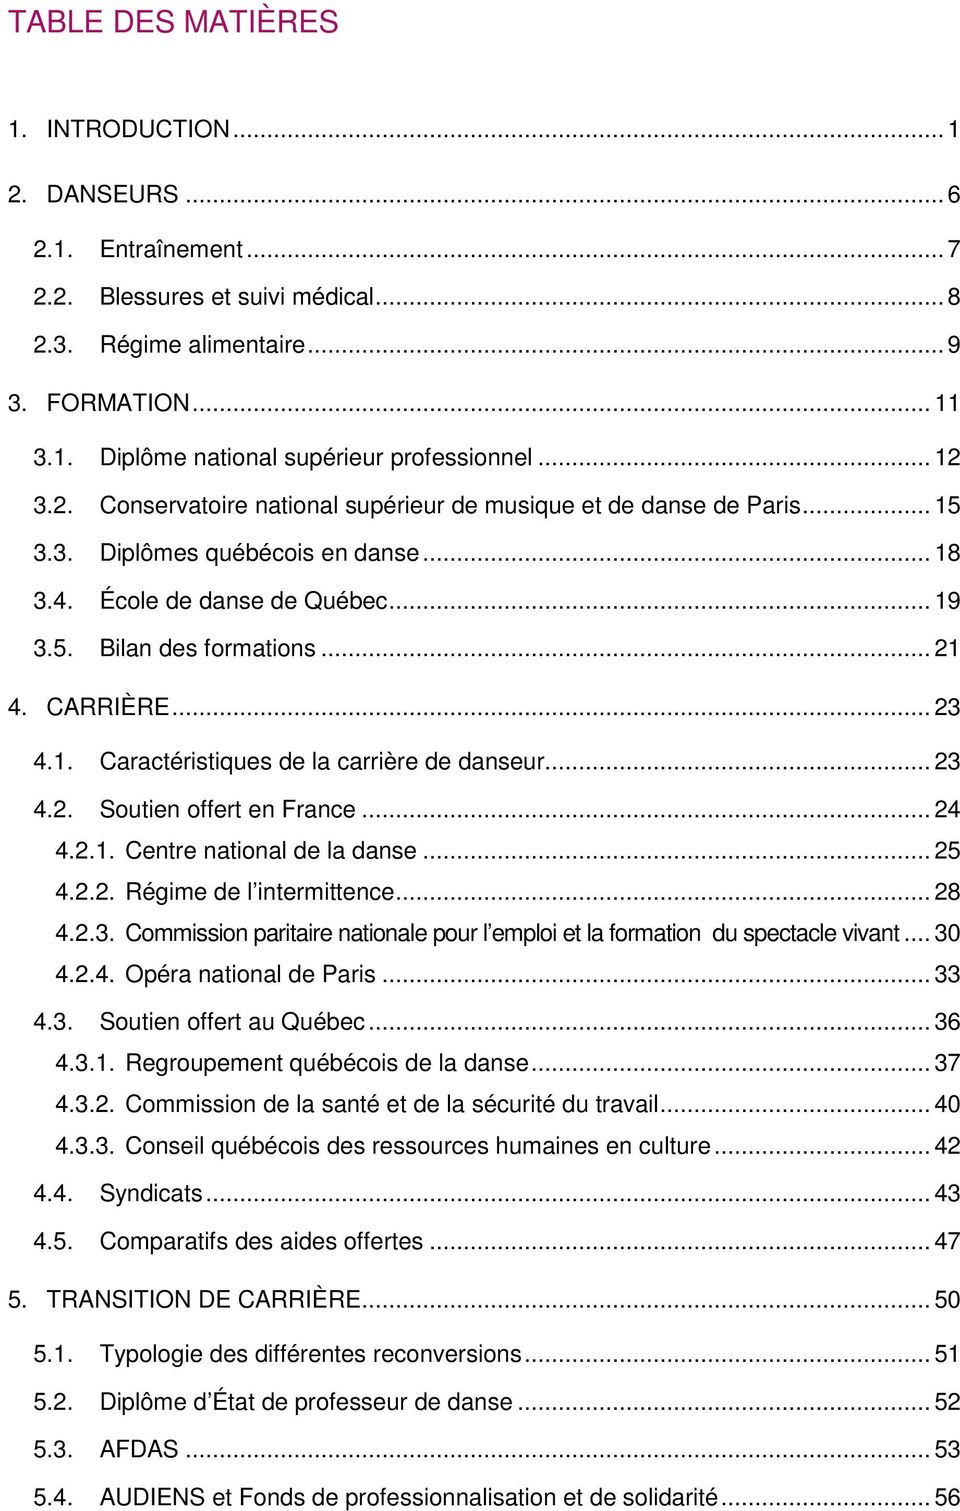 CARRIÈRE... 23 4.1. Caractéristiques de la carrière de danseur... 23 4.2. Soutien offert en France... 24 4.2.1. Centre national de la danse... 25 4.2.2. Régime de l intermittence... 28 4.2.3. Commission paritaire nationale pour l emploi et la formation du spectacle vivant.